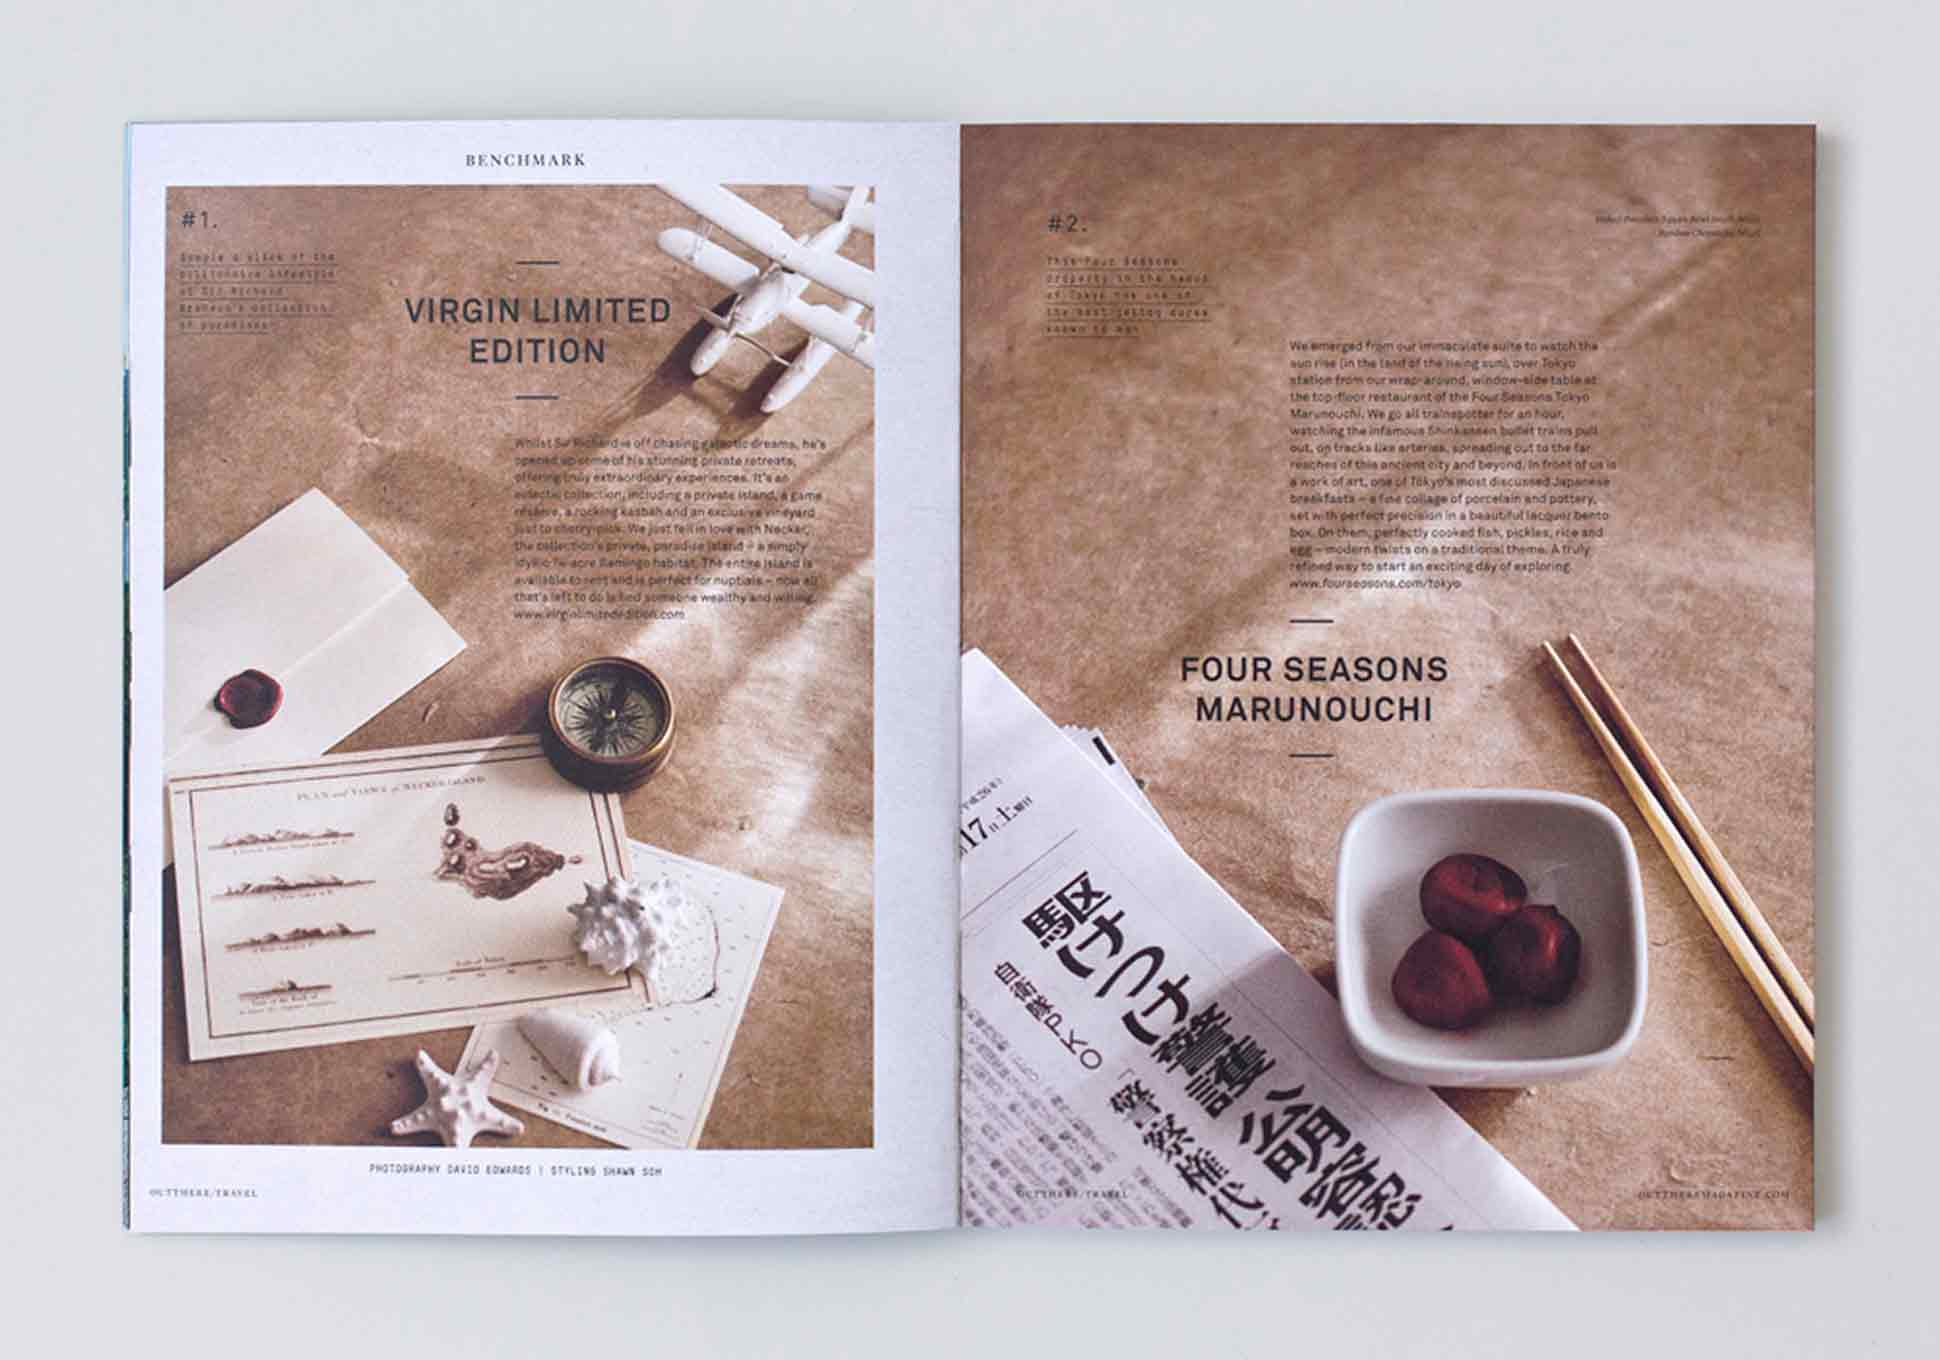 Out There Travel Beautiful Bali Issue Preview - Virgin Limited Edition, Four Seasons Marounochi, Tokyo